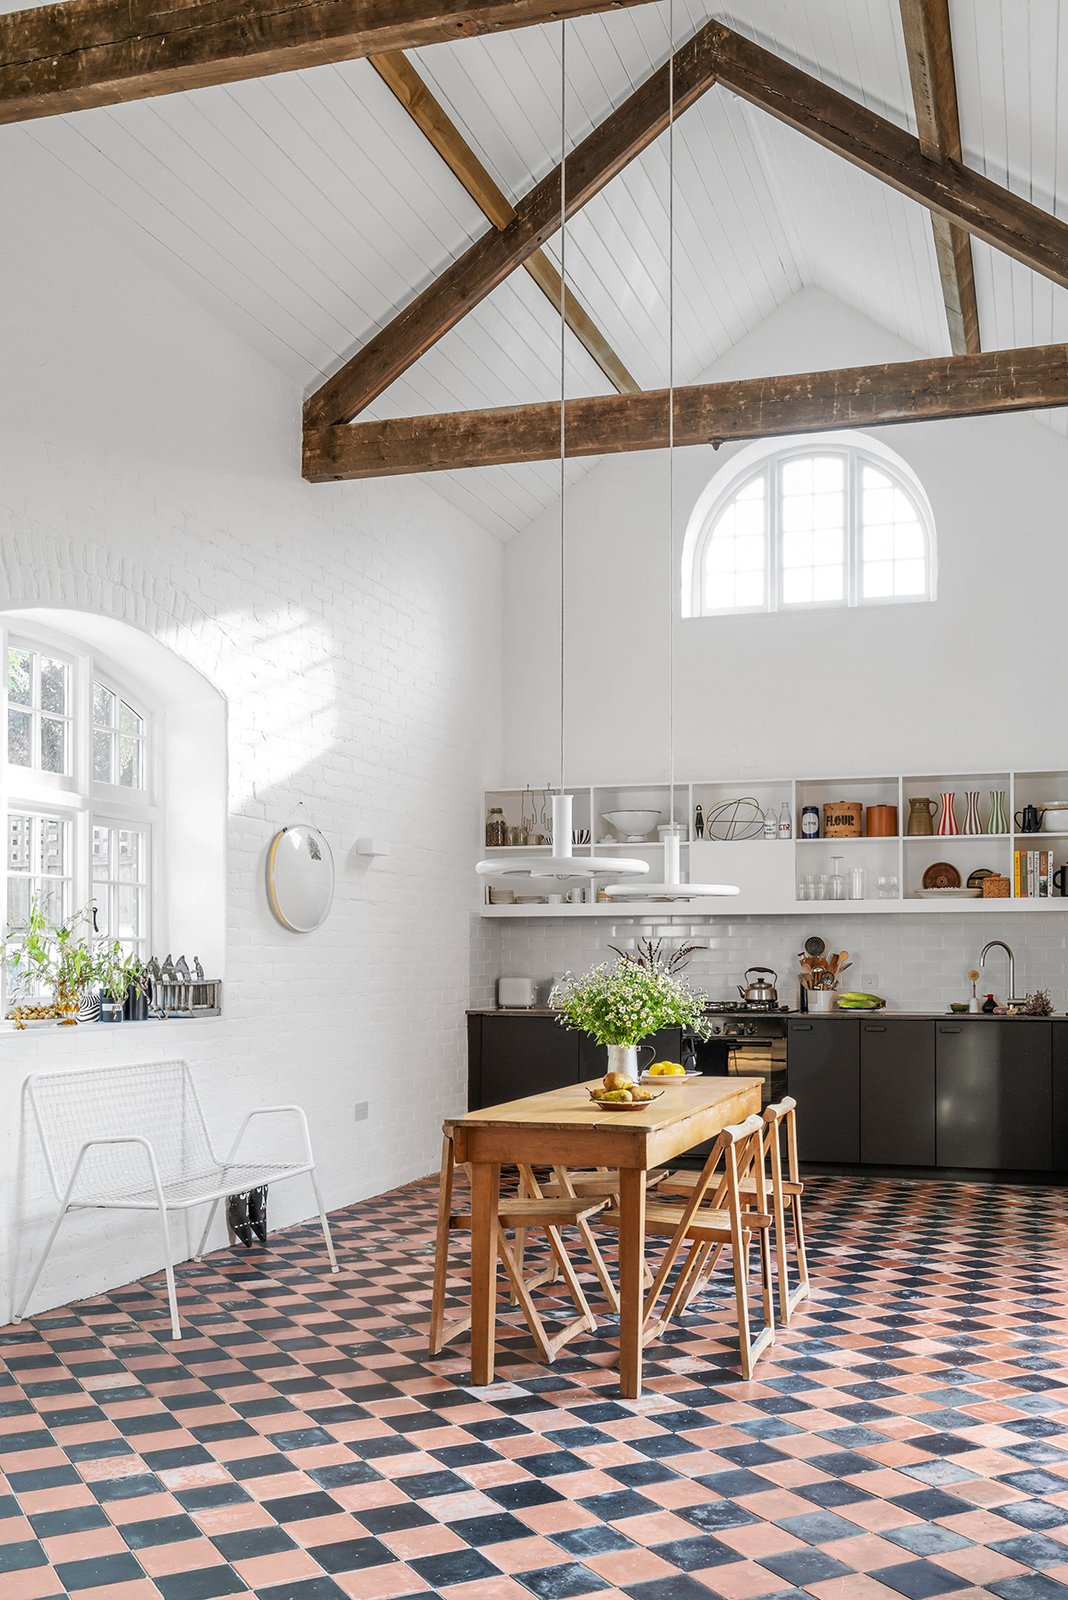 Before & After: A Brick Engine House Becomes an Airy Abode in England